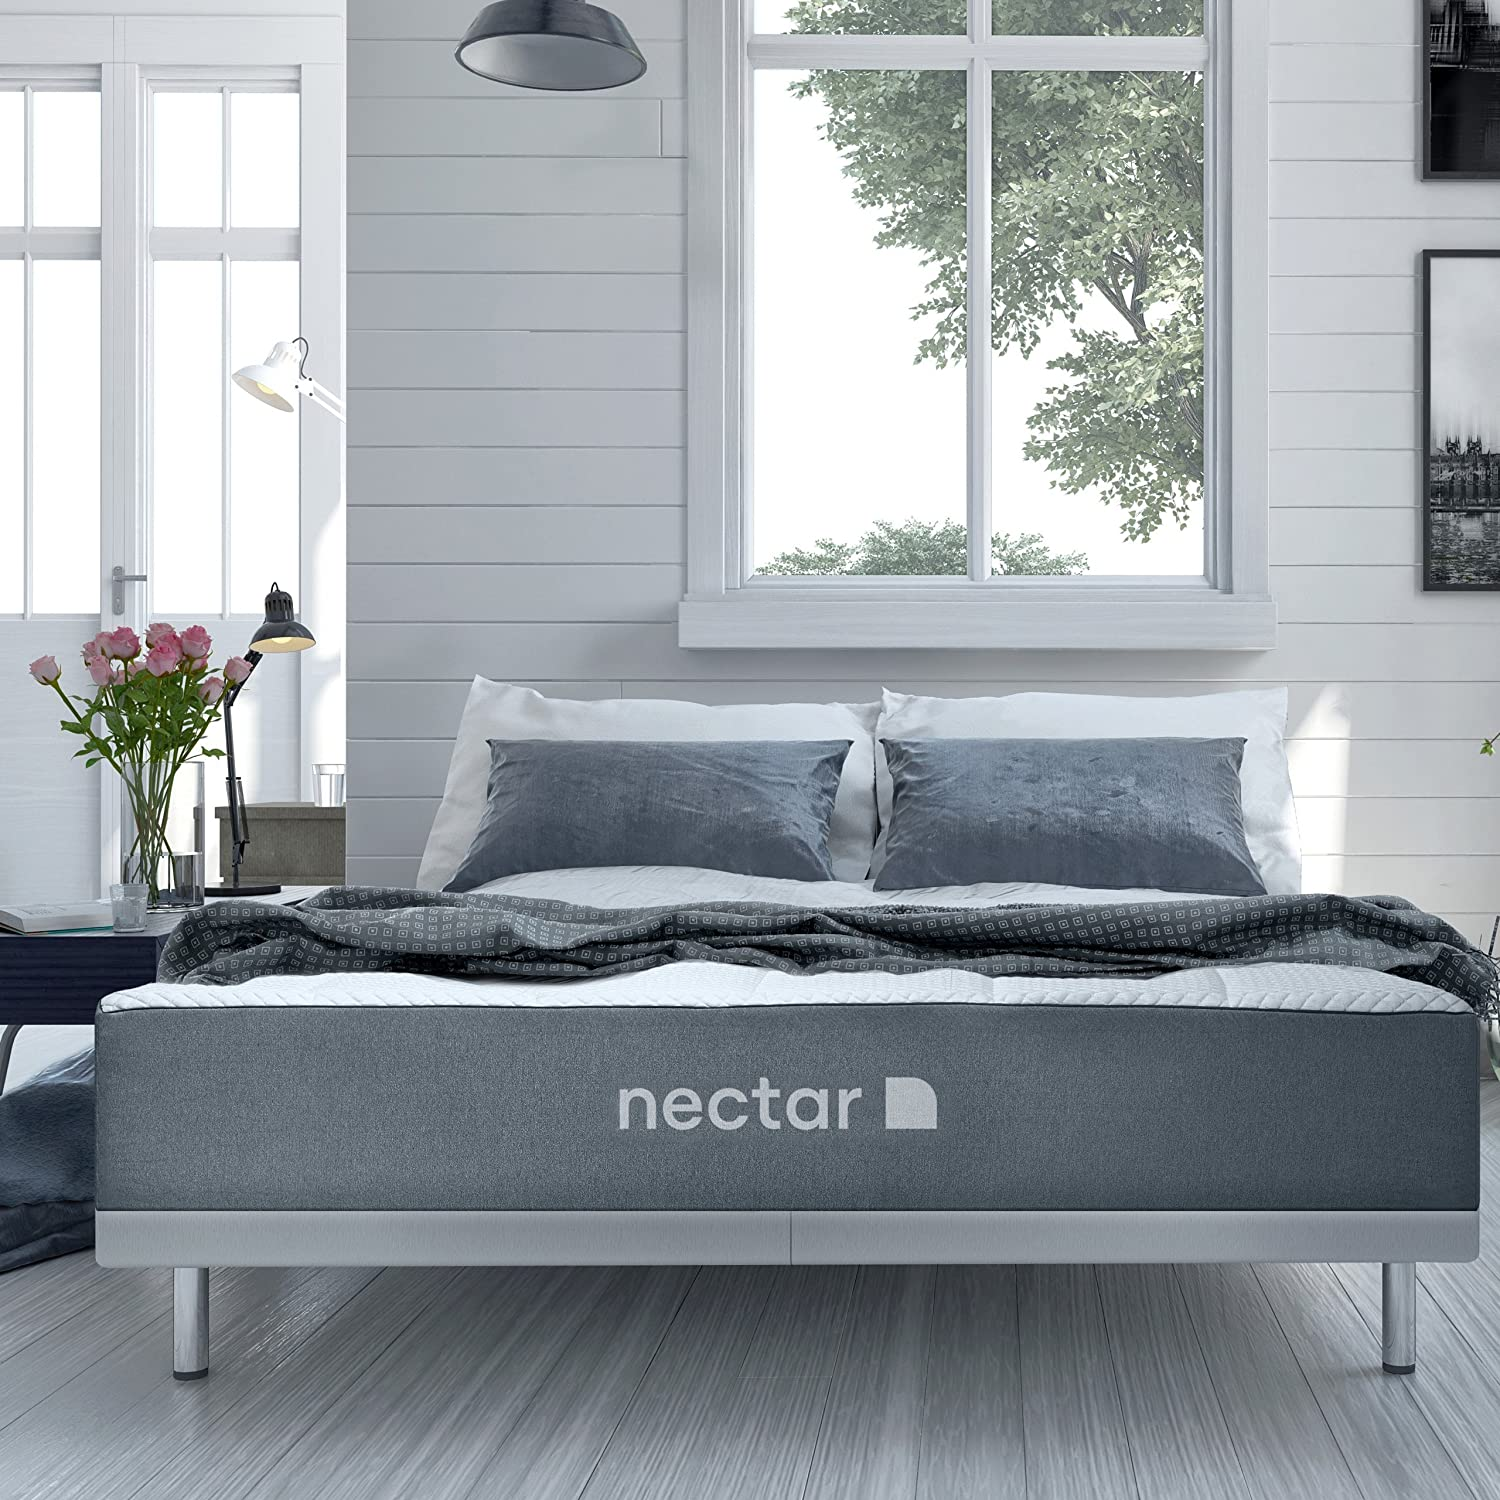 Amazon.com: Nectar Queen Mattress + 2 Free Pillows   Gel Memory Foam    CertiPUR  US Certified   180 Night Home Trial   Forever Warranty: Kitchen U0026  Dining